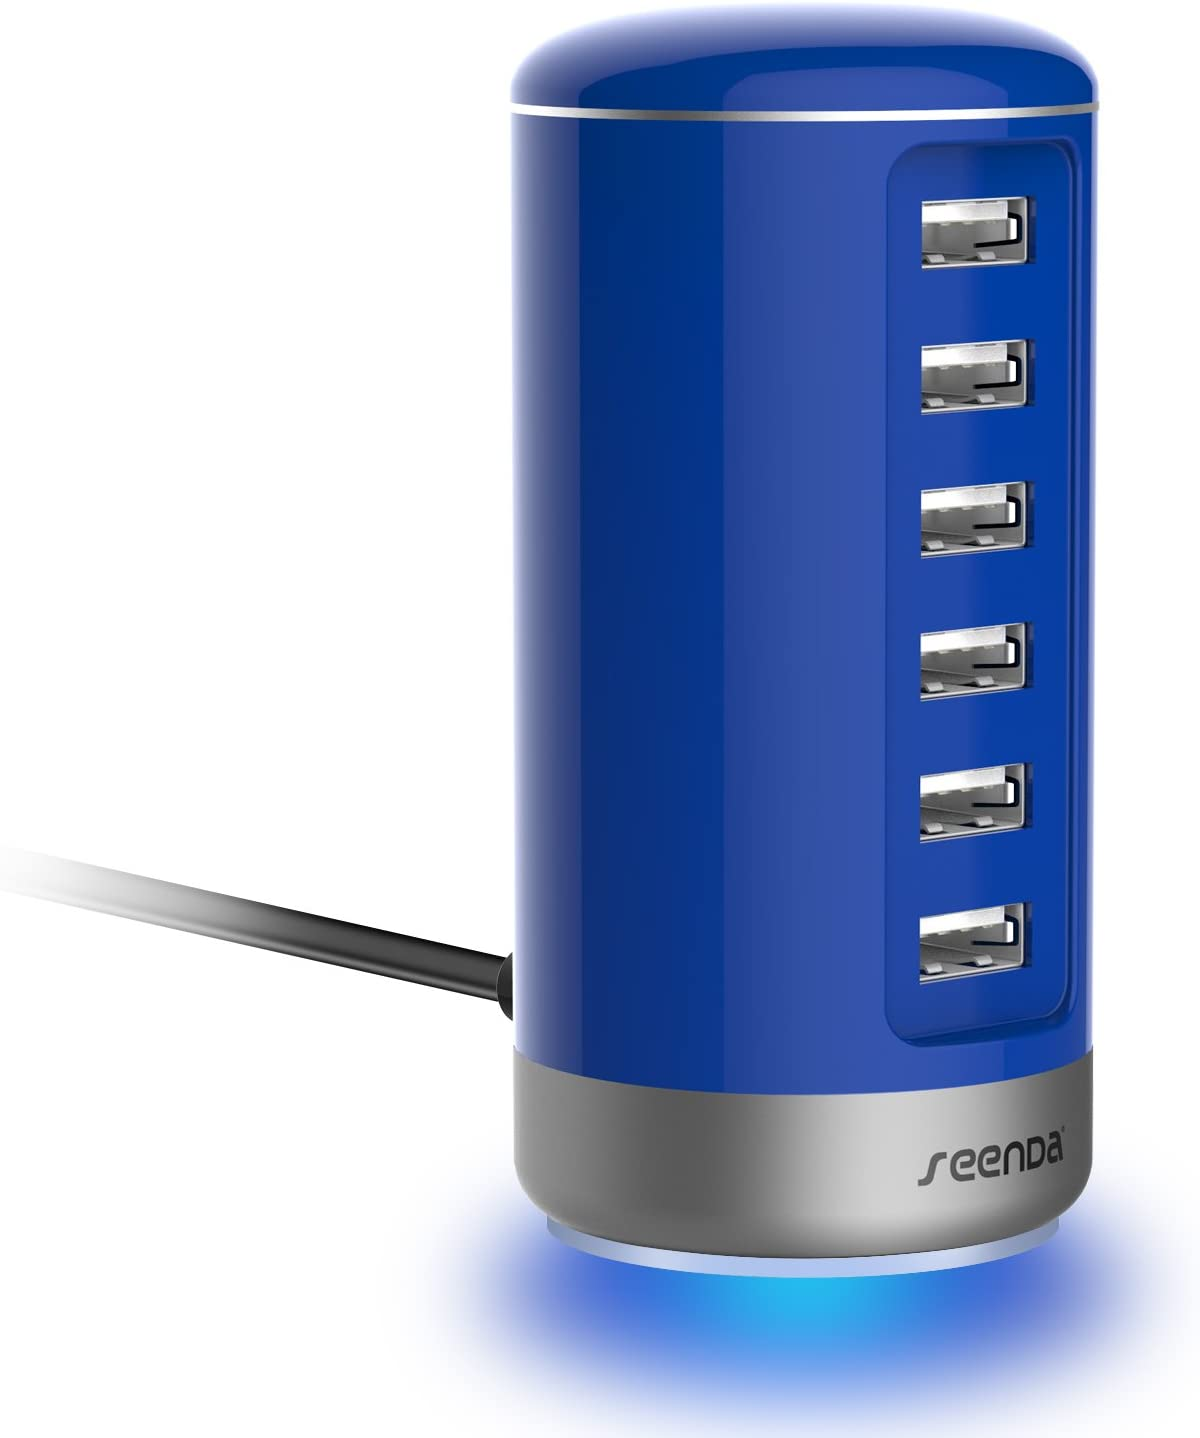 seenda 6 Port USB Charging Station USB Desktop Charger with Smart Identification - Blue